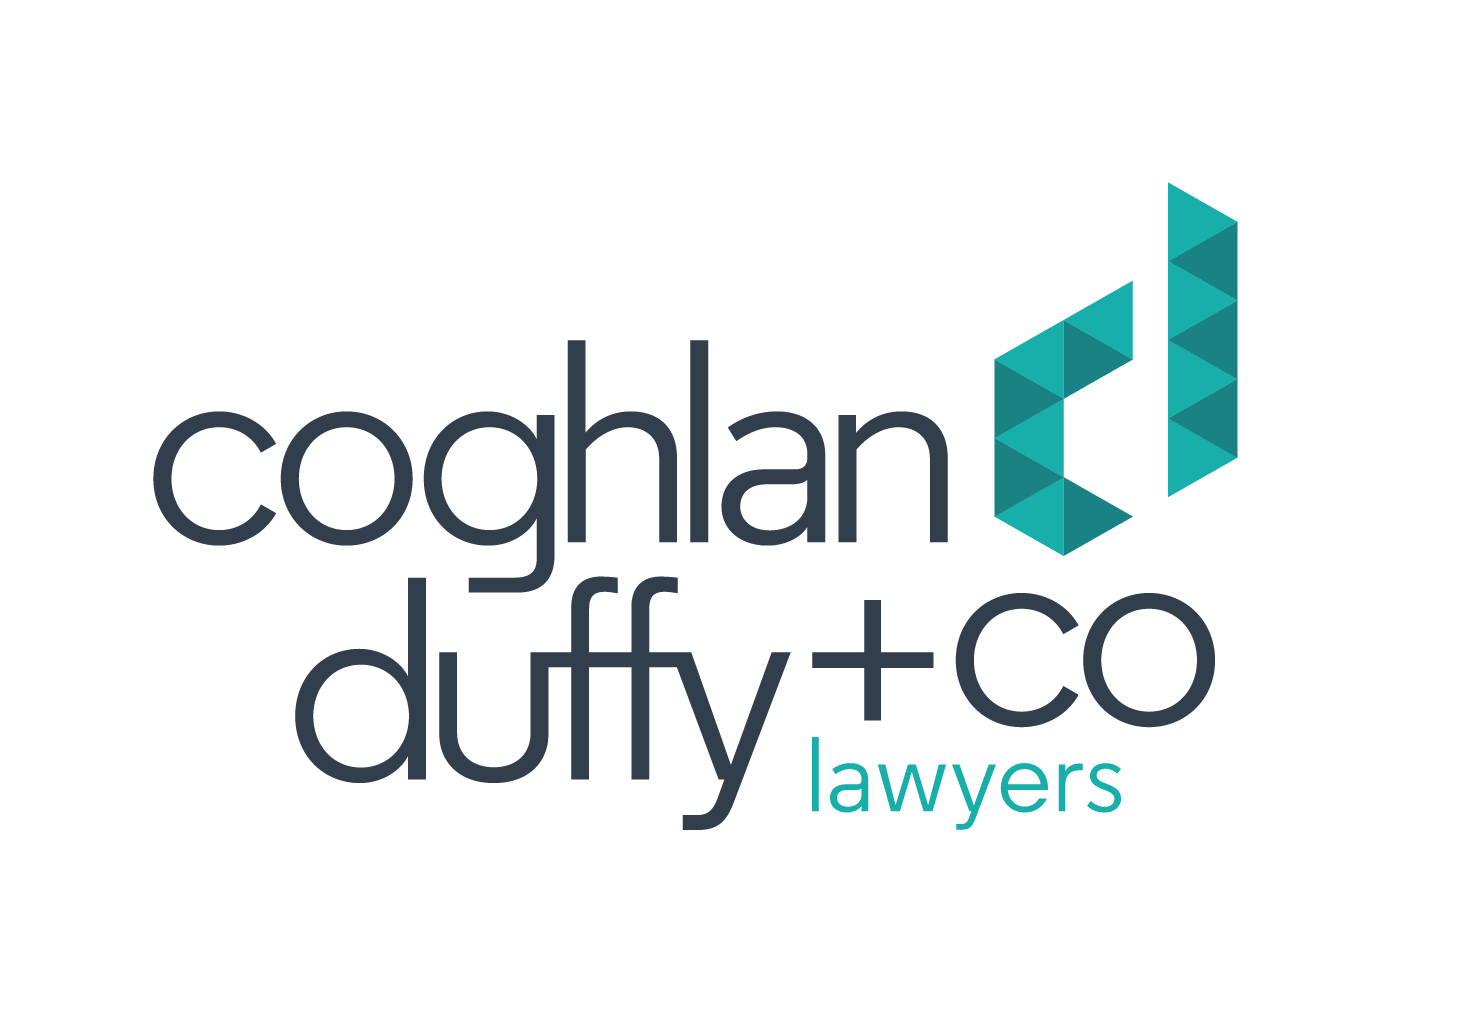 Coghlan Duffy & Co